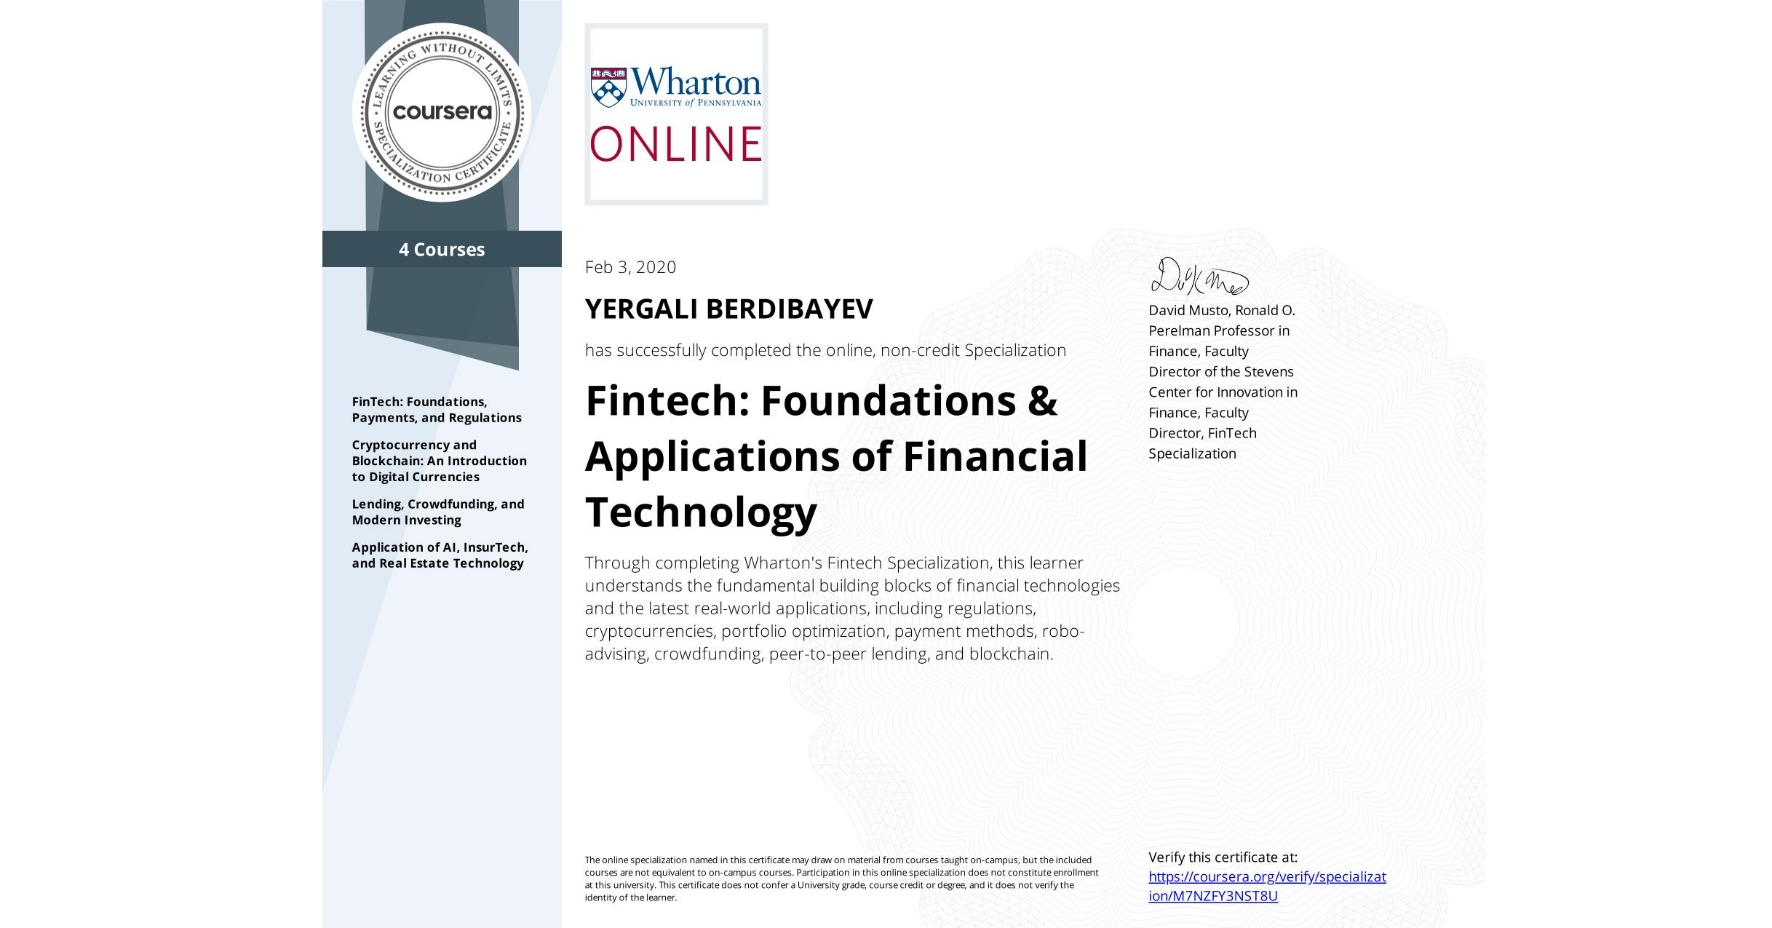 View certificate for Yergali Berdibayev, Fintech: Foundations & Applications of Financial Technology, offered through Coursera. Through completing Wharton's Fintech Specialization, this learner understands the fundamental building blocks of financial technologies and the latest real-world applications, including regulations, cryptocurrencies,  portfolio optimization, payment methods, robo-advising, crowdfunding, peer-to-peer lending, and blockchain.